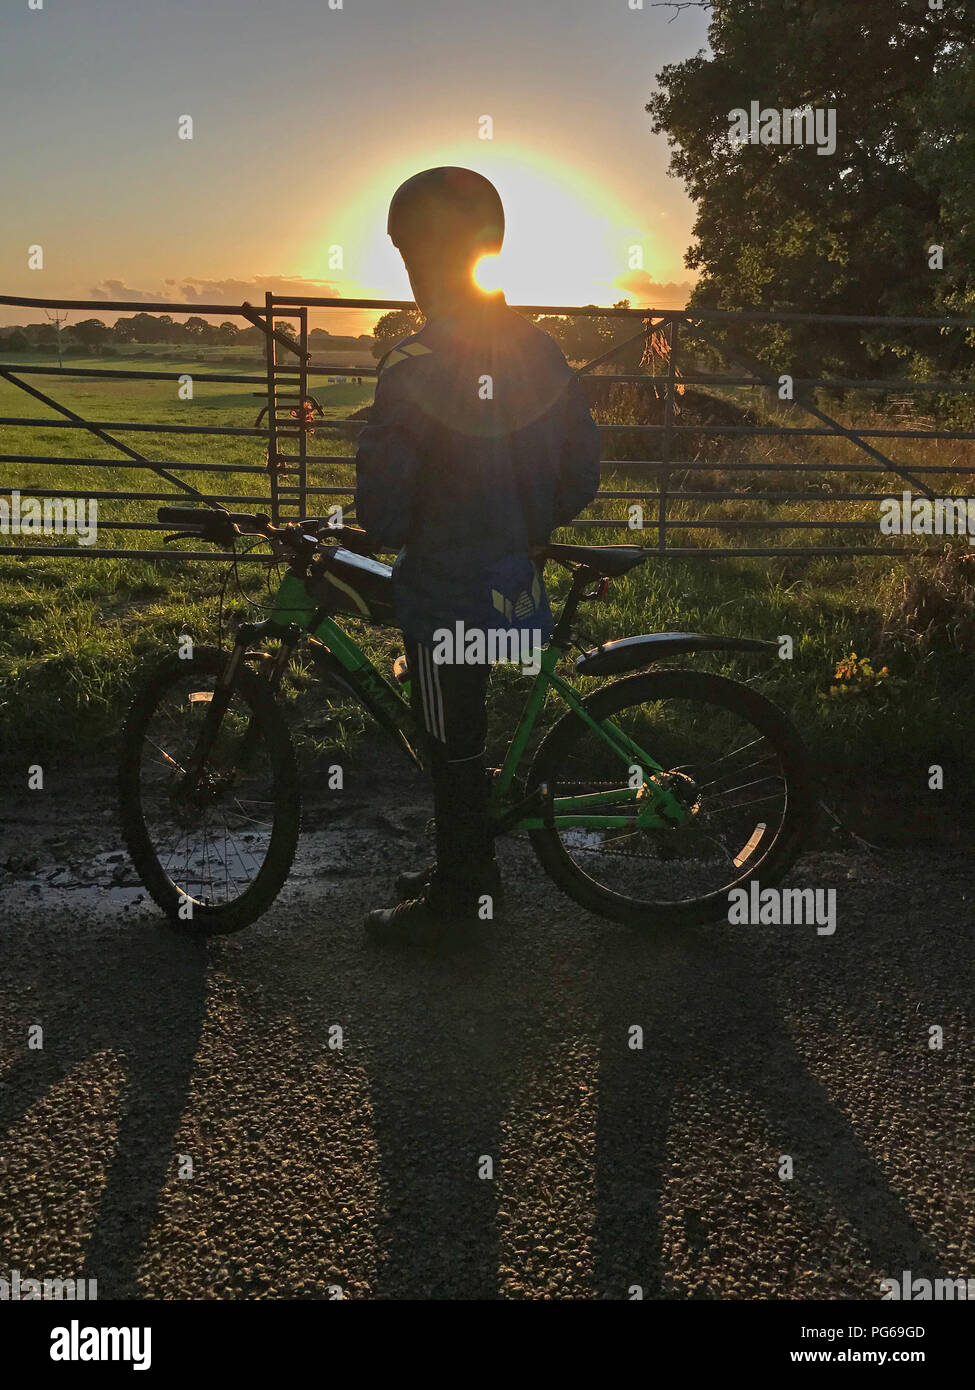 @Hotpixuk,sunset behind,Youth,boy,girl,cycle,bicycle,countryside,dusk,dawn,at dusk,MT,cycling,sun,sunshine,cyclist,sunset cyclist,sunrise cyclist,Cheshire,UK,England,North West England,summer,shadow,shadows,rider,riding,transport,commuting,gate,gates,country lane,rural,rural lane,getting out by bike,getting out by cycle,GoTonySmith